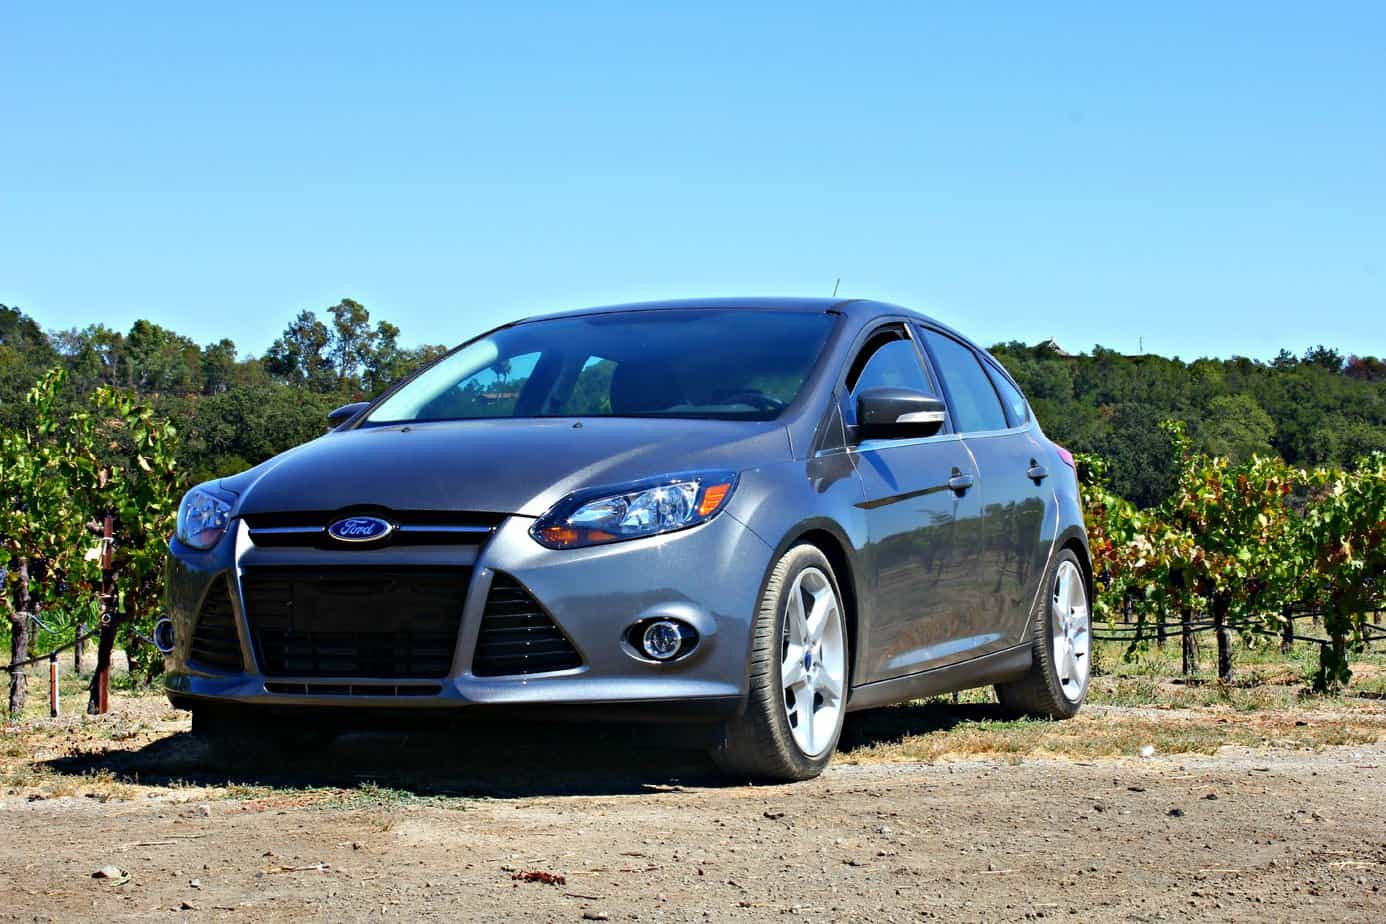 2014 Ford Focus 5-Door Hatchback Titanium: Spacious, Sporty and Affordable 1